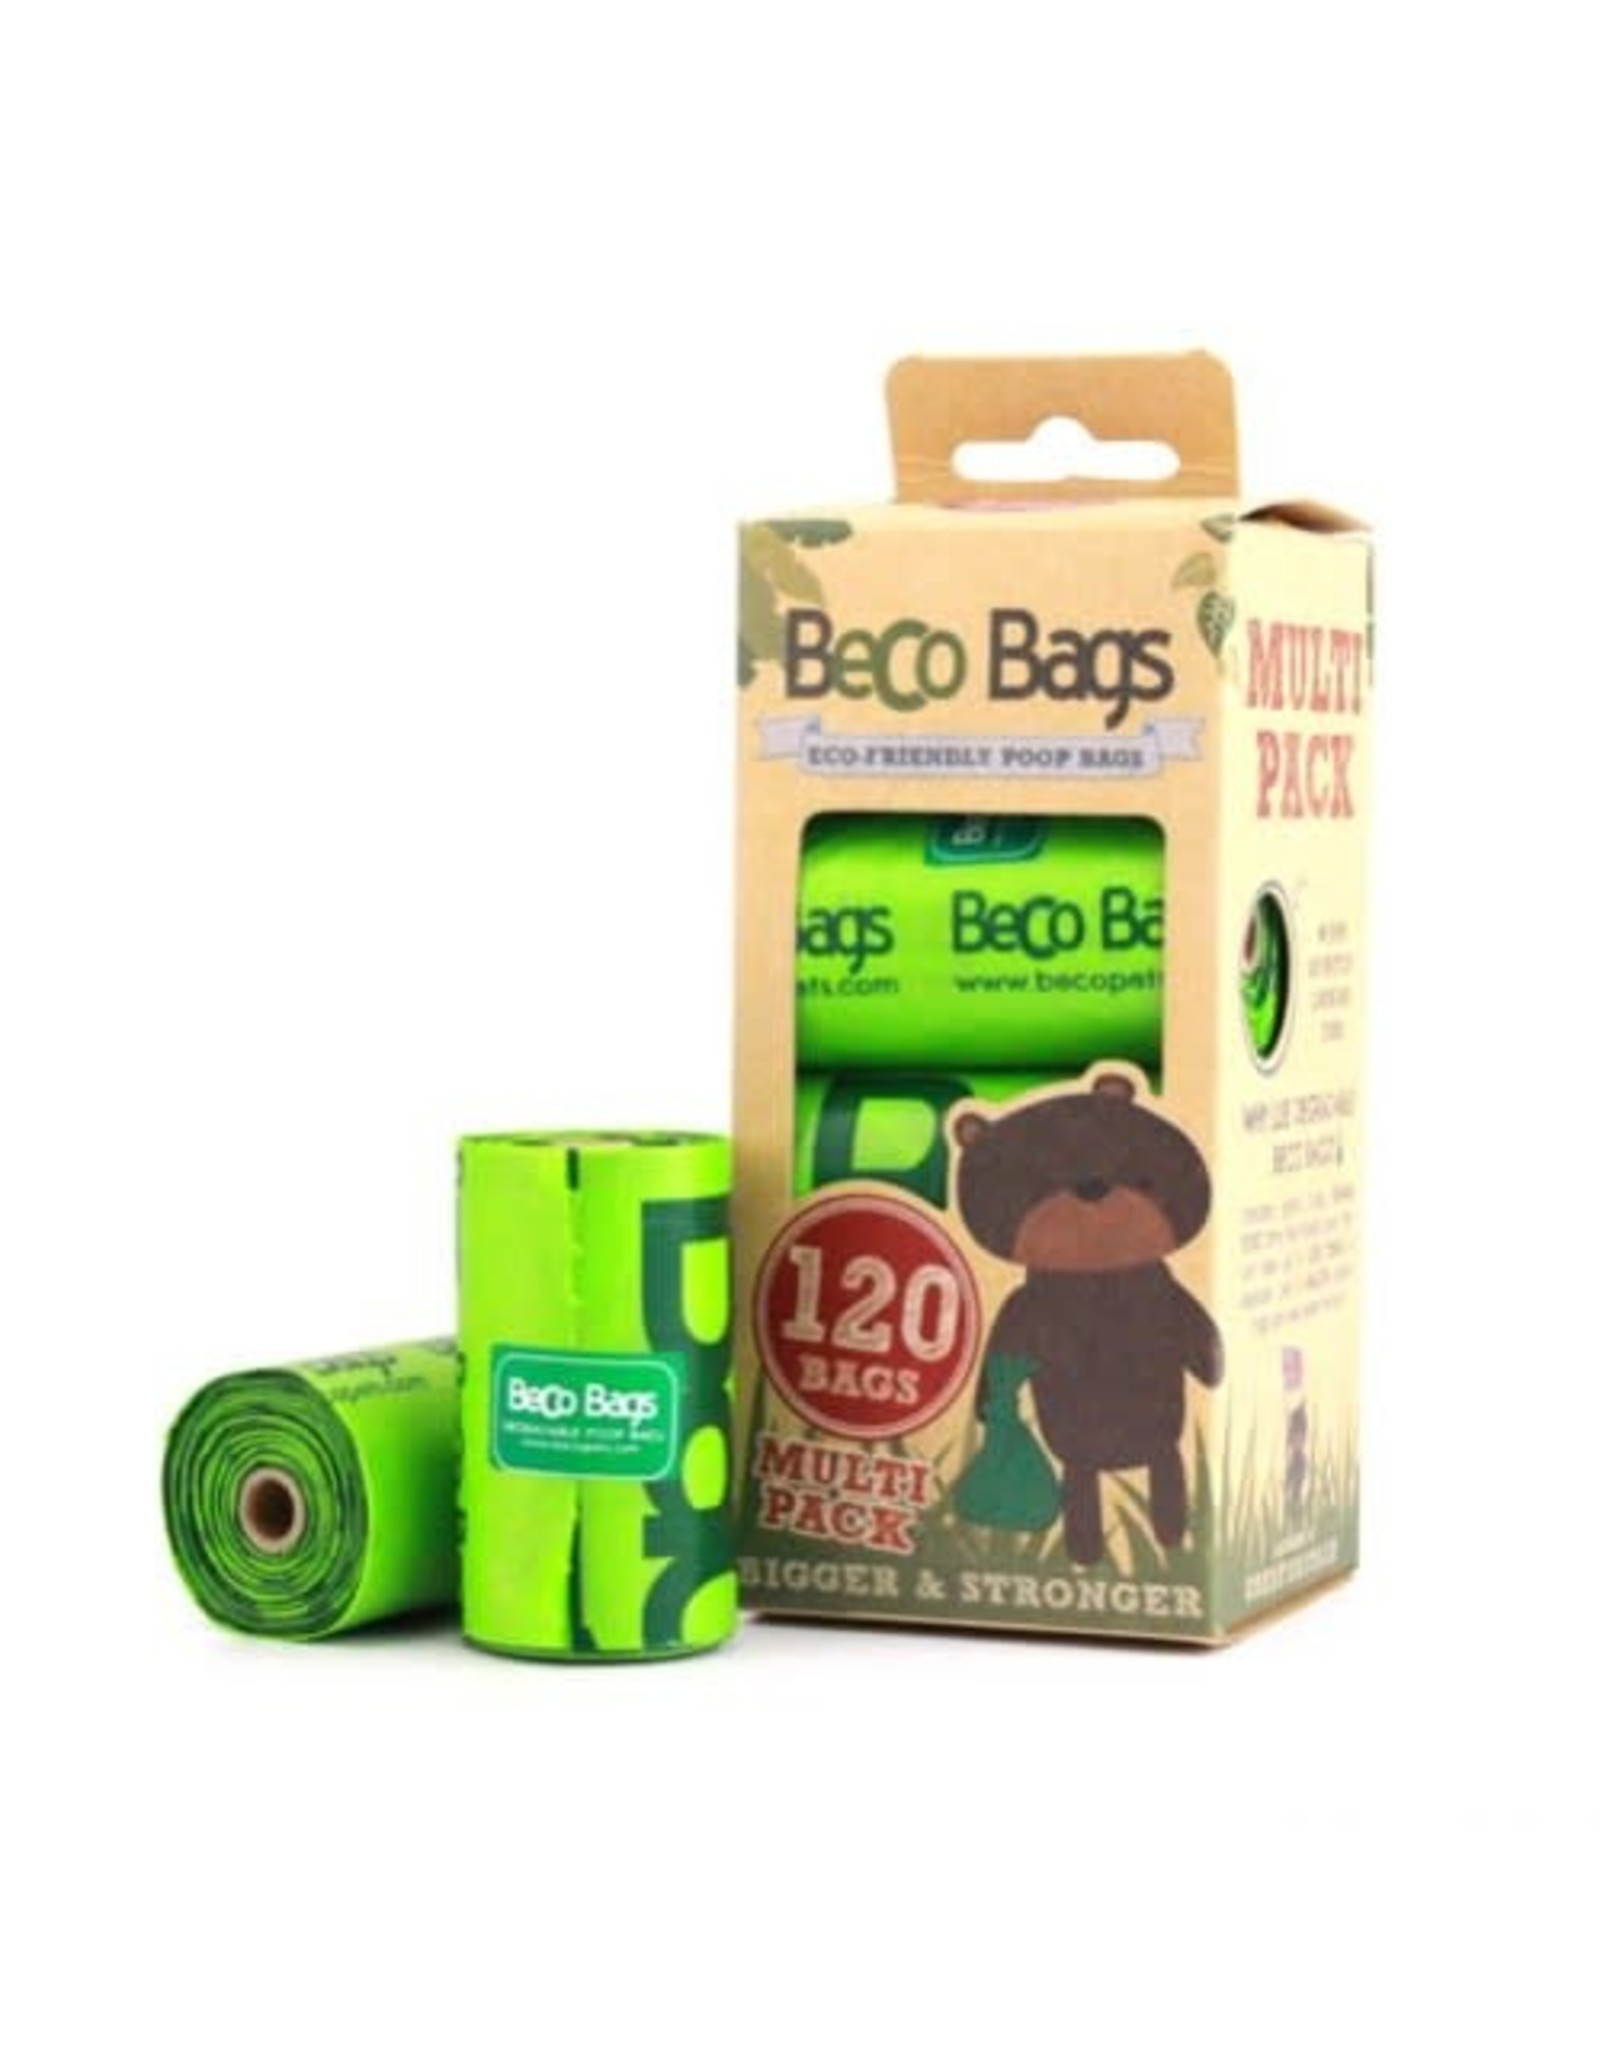 Beco Pets Beco Bags - Travel Pack 60bags